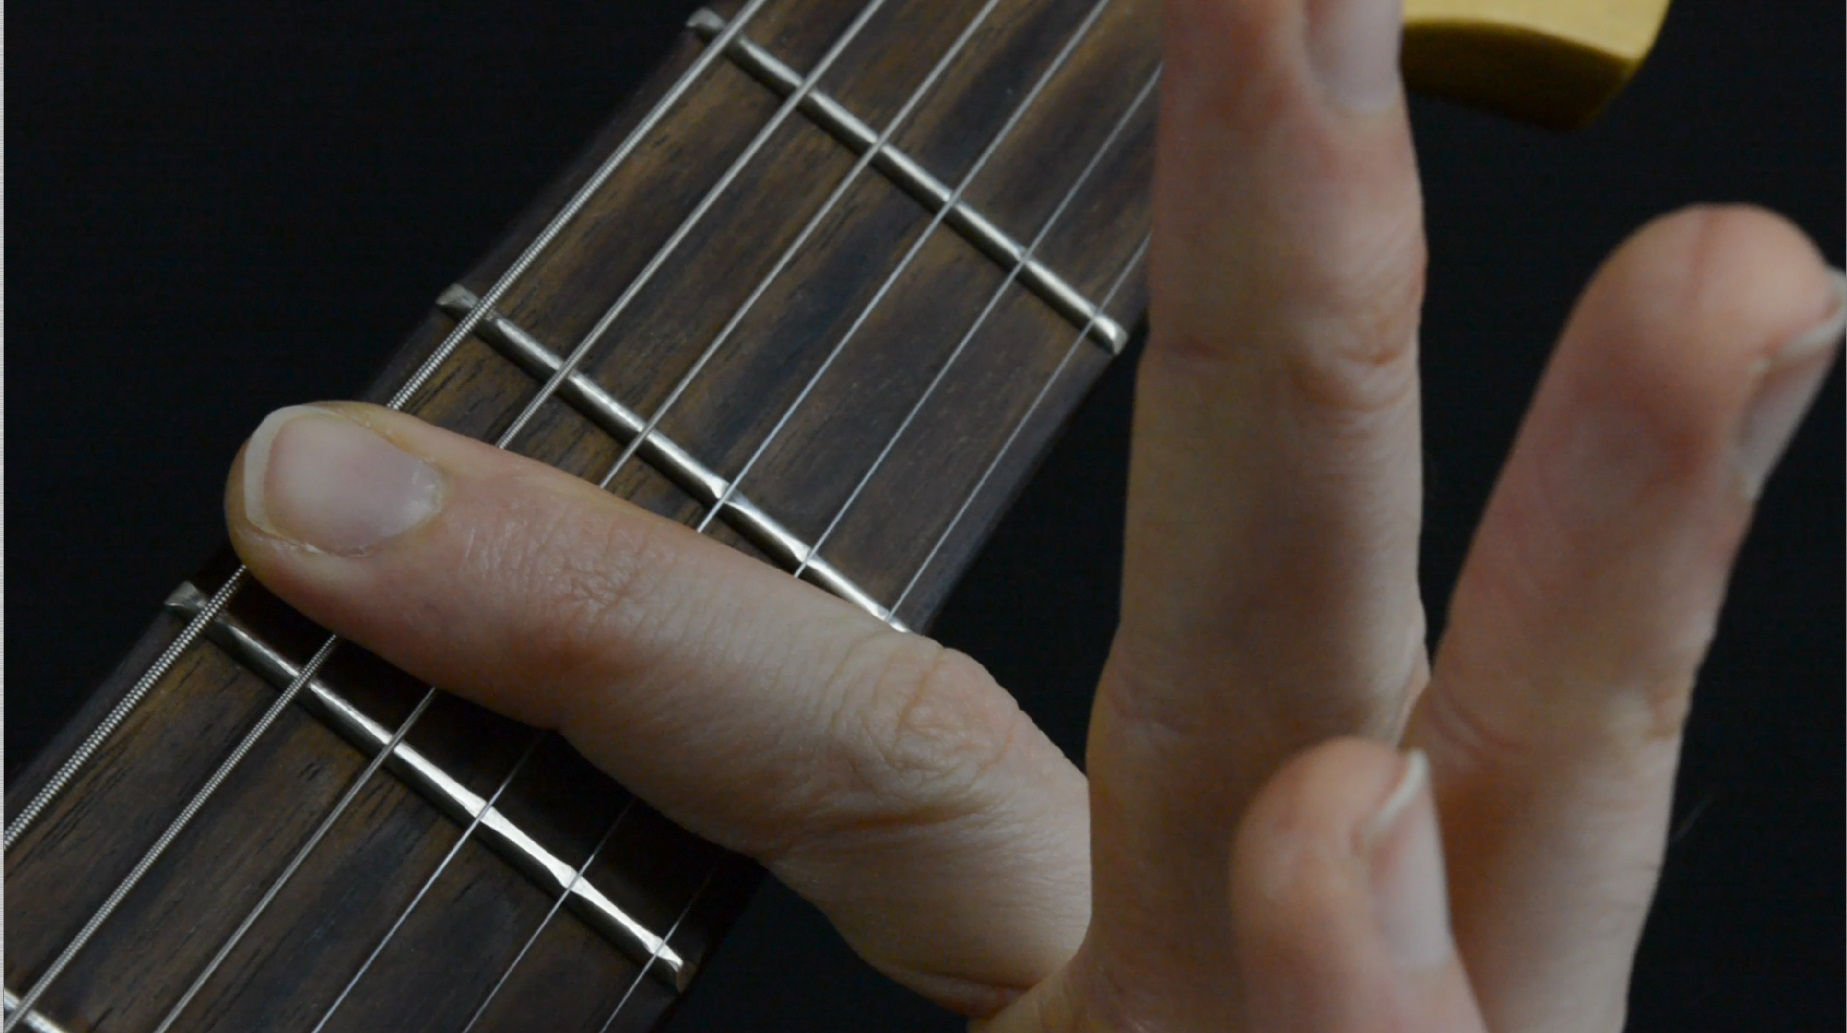 12 Undeniable Signs That Your Guitar Playing Skills Are Out Of